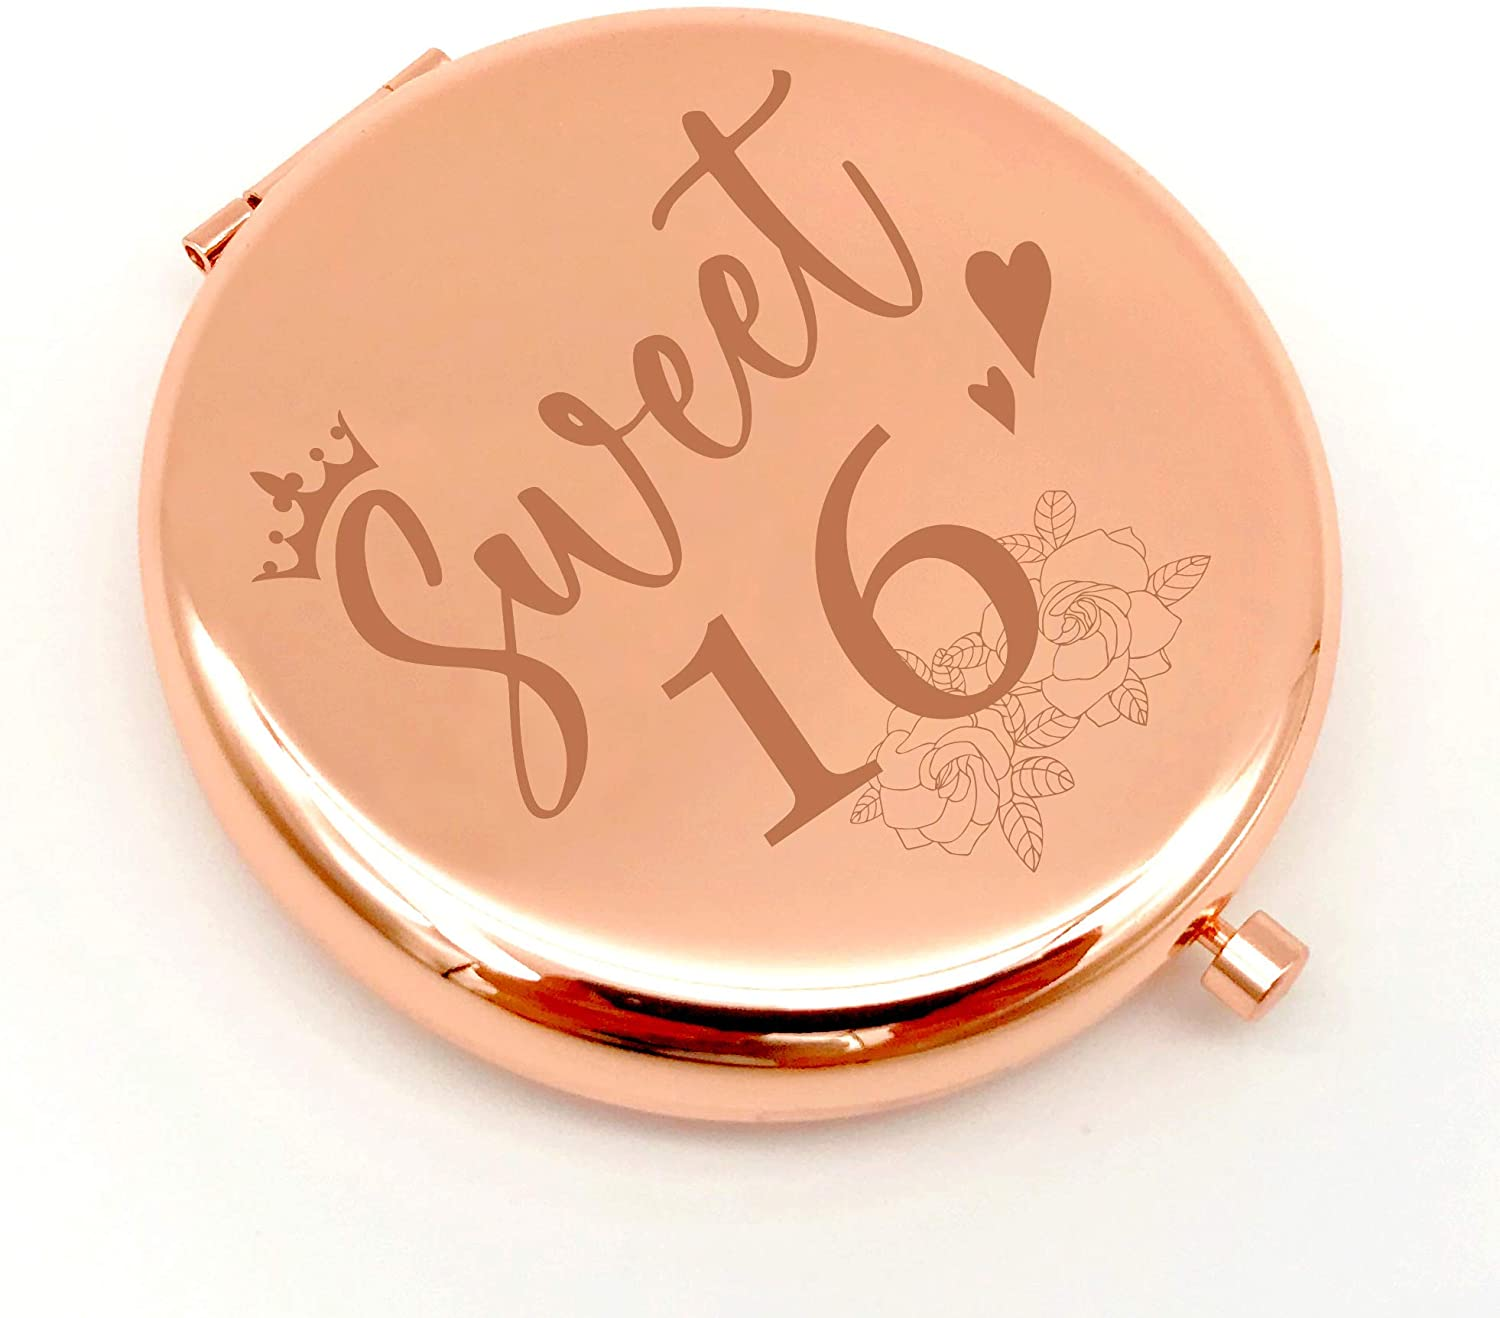 Warehouse No.9 Sweet 16 Gifts for Girls 16th Birthday Gifts, Double Sided Engraved Travel Compact Pocket Makeup Mirror Gift for Teen Girls Daughter